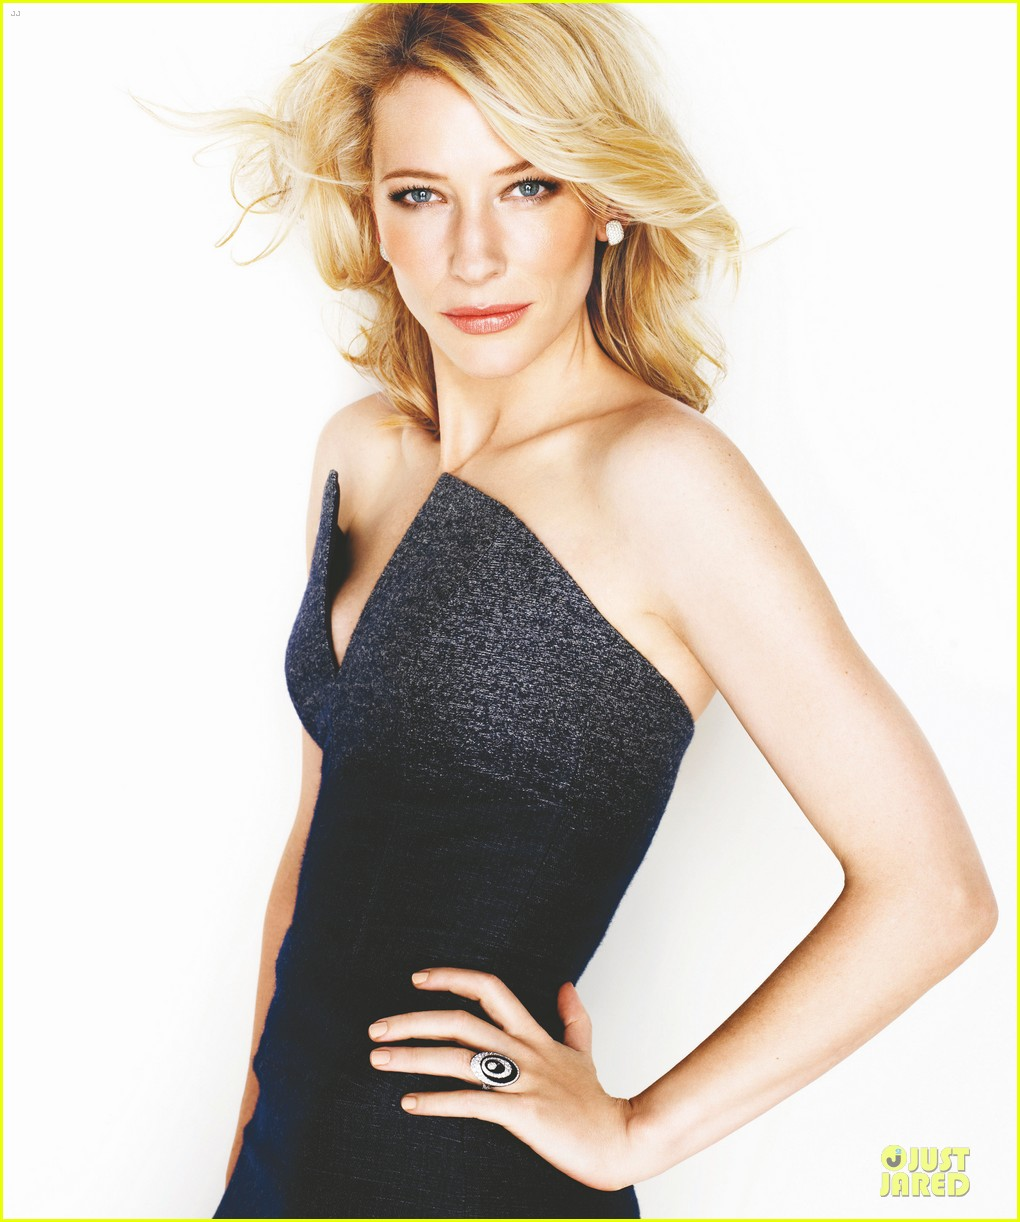 Cate Blanchett Covers 'Gotham' Summer 2012: Photo 2671240 ... Cate Blanchett Magazine